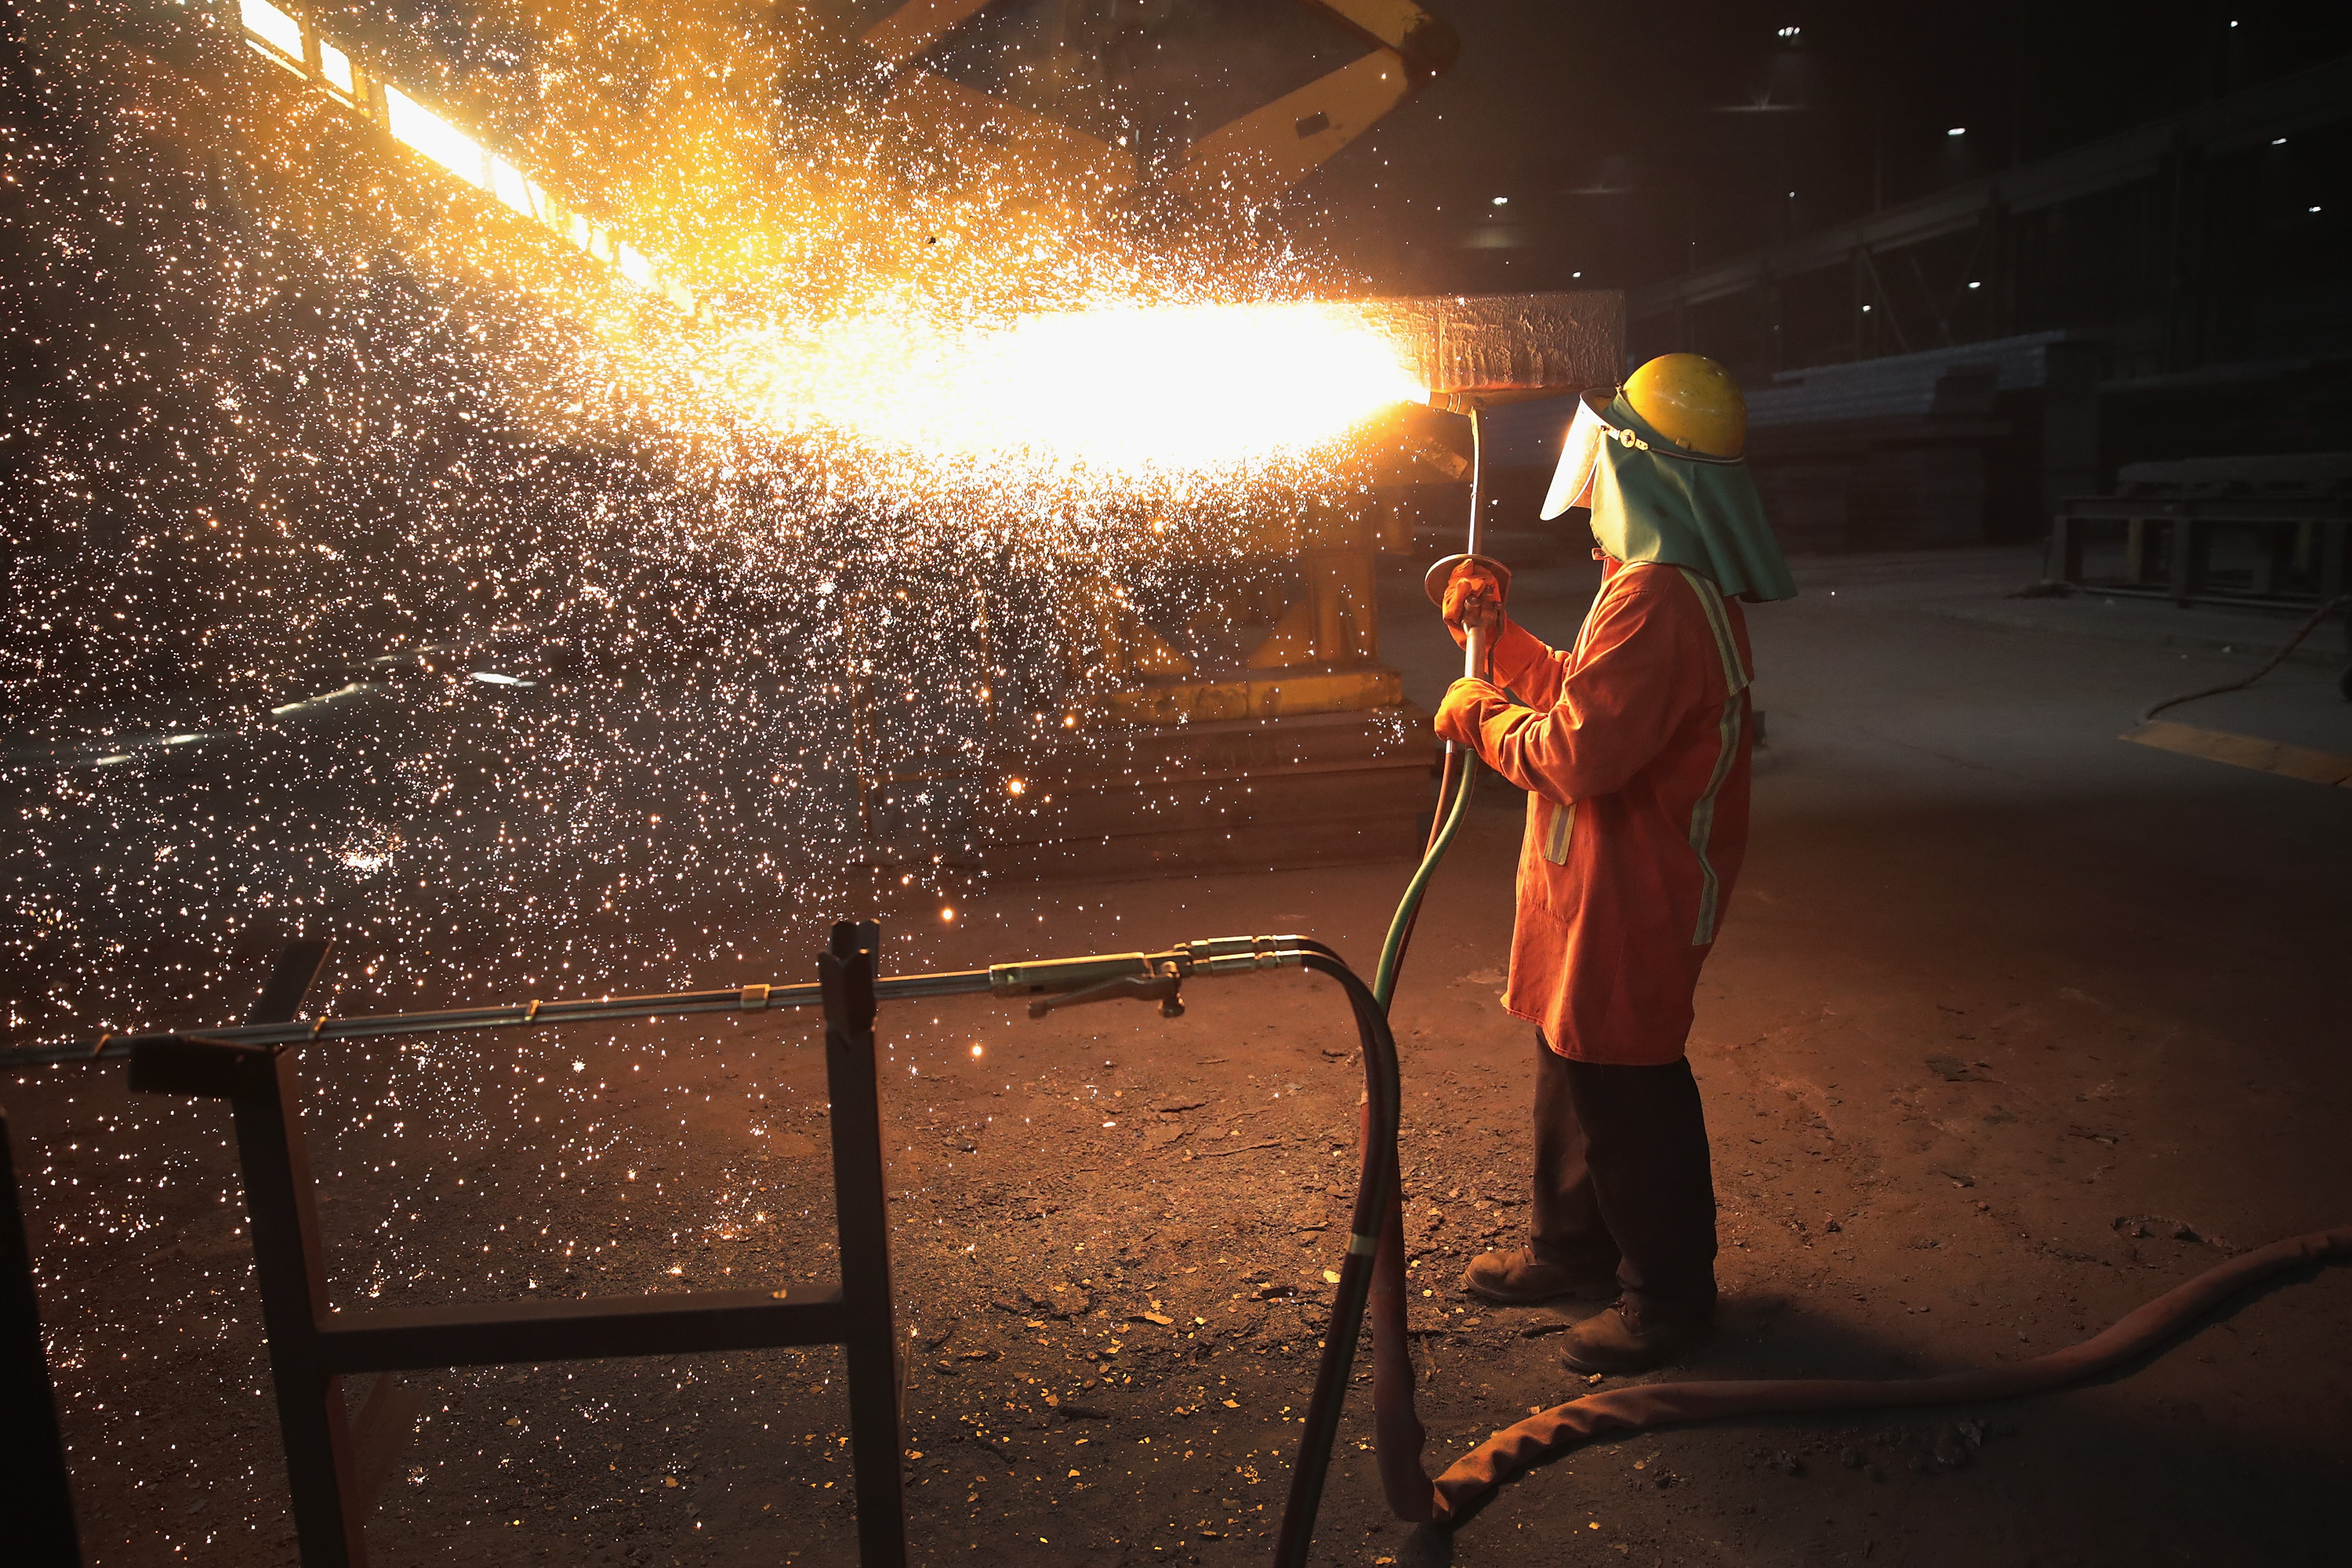 "PORTAGE, IN - MARCH 15: A worker trims a newly-cast steel slab at the NLMK Indiana steel mill on March 15, 2018 in Portage, Indiana. The mill, which is projected to produce up to 1 million tons of steel from recycled scrap in 2018, is considered a ""mini mill"" by U.S standards. NLMK Indiana is a subsidiary of NLMK, one of Russia's largest steel manufacturers, responsible for nearly a quarter of Russia's steel production and producing nearly a quarter of the worlds slab steel. Steel producers in the U.S. and worldwide are preparing for the impact of the recently-proposed tariffs by the Trump administration of 25 percent on imported steel. (Photo by Scott Olson/Getty Images)"